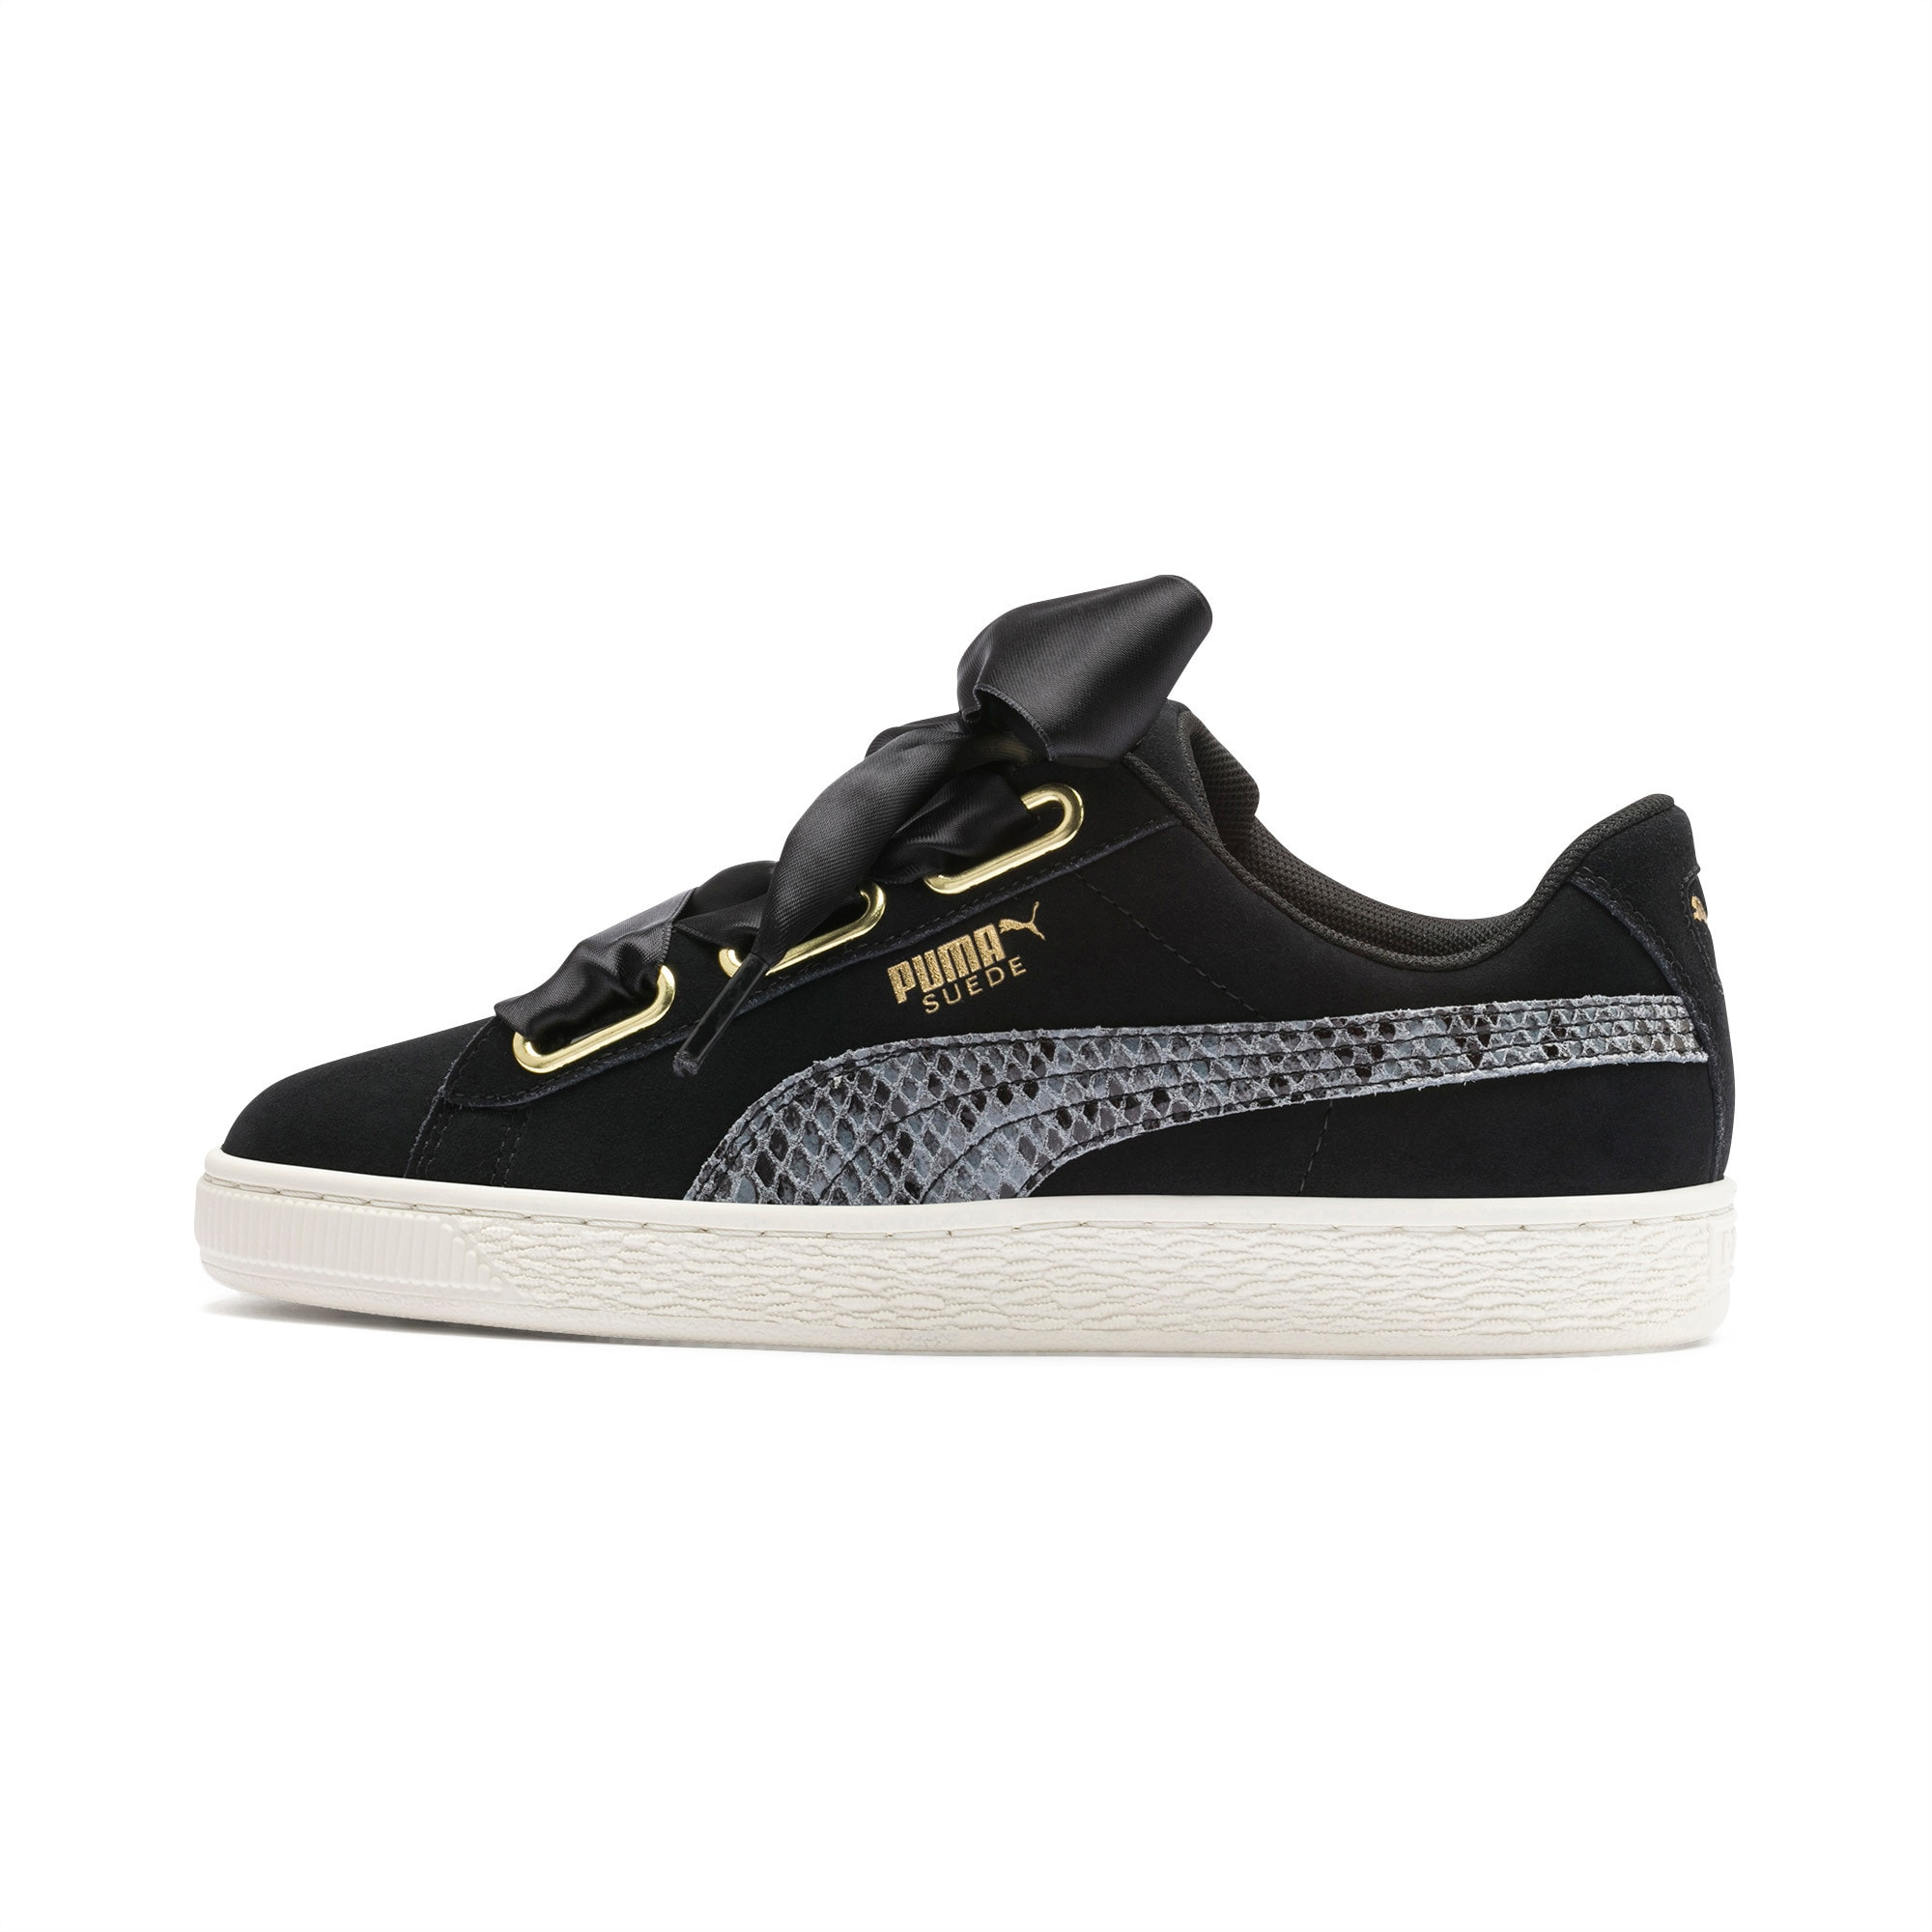 Suede Heart Snake Lux Women's Shoes